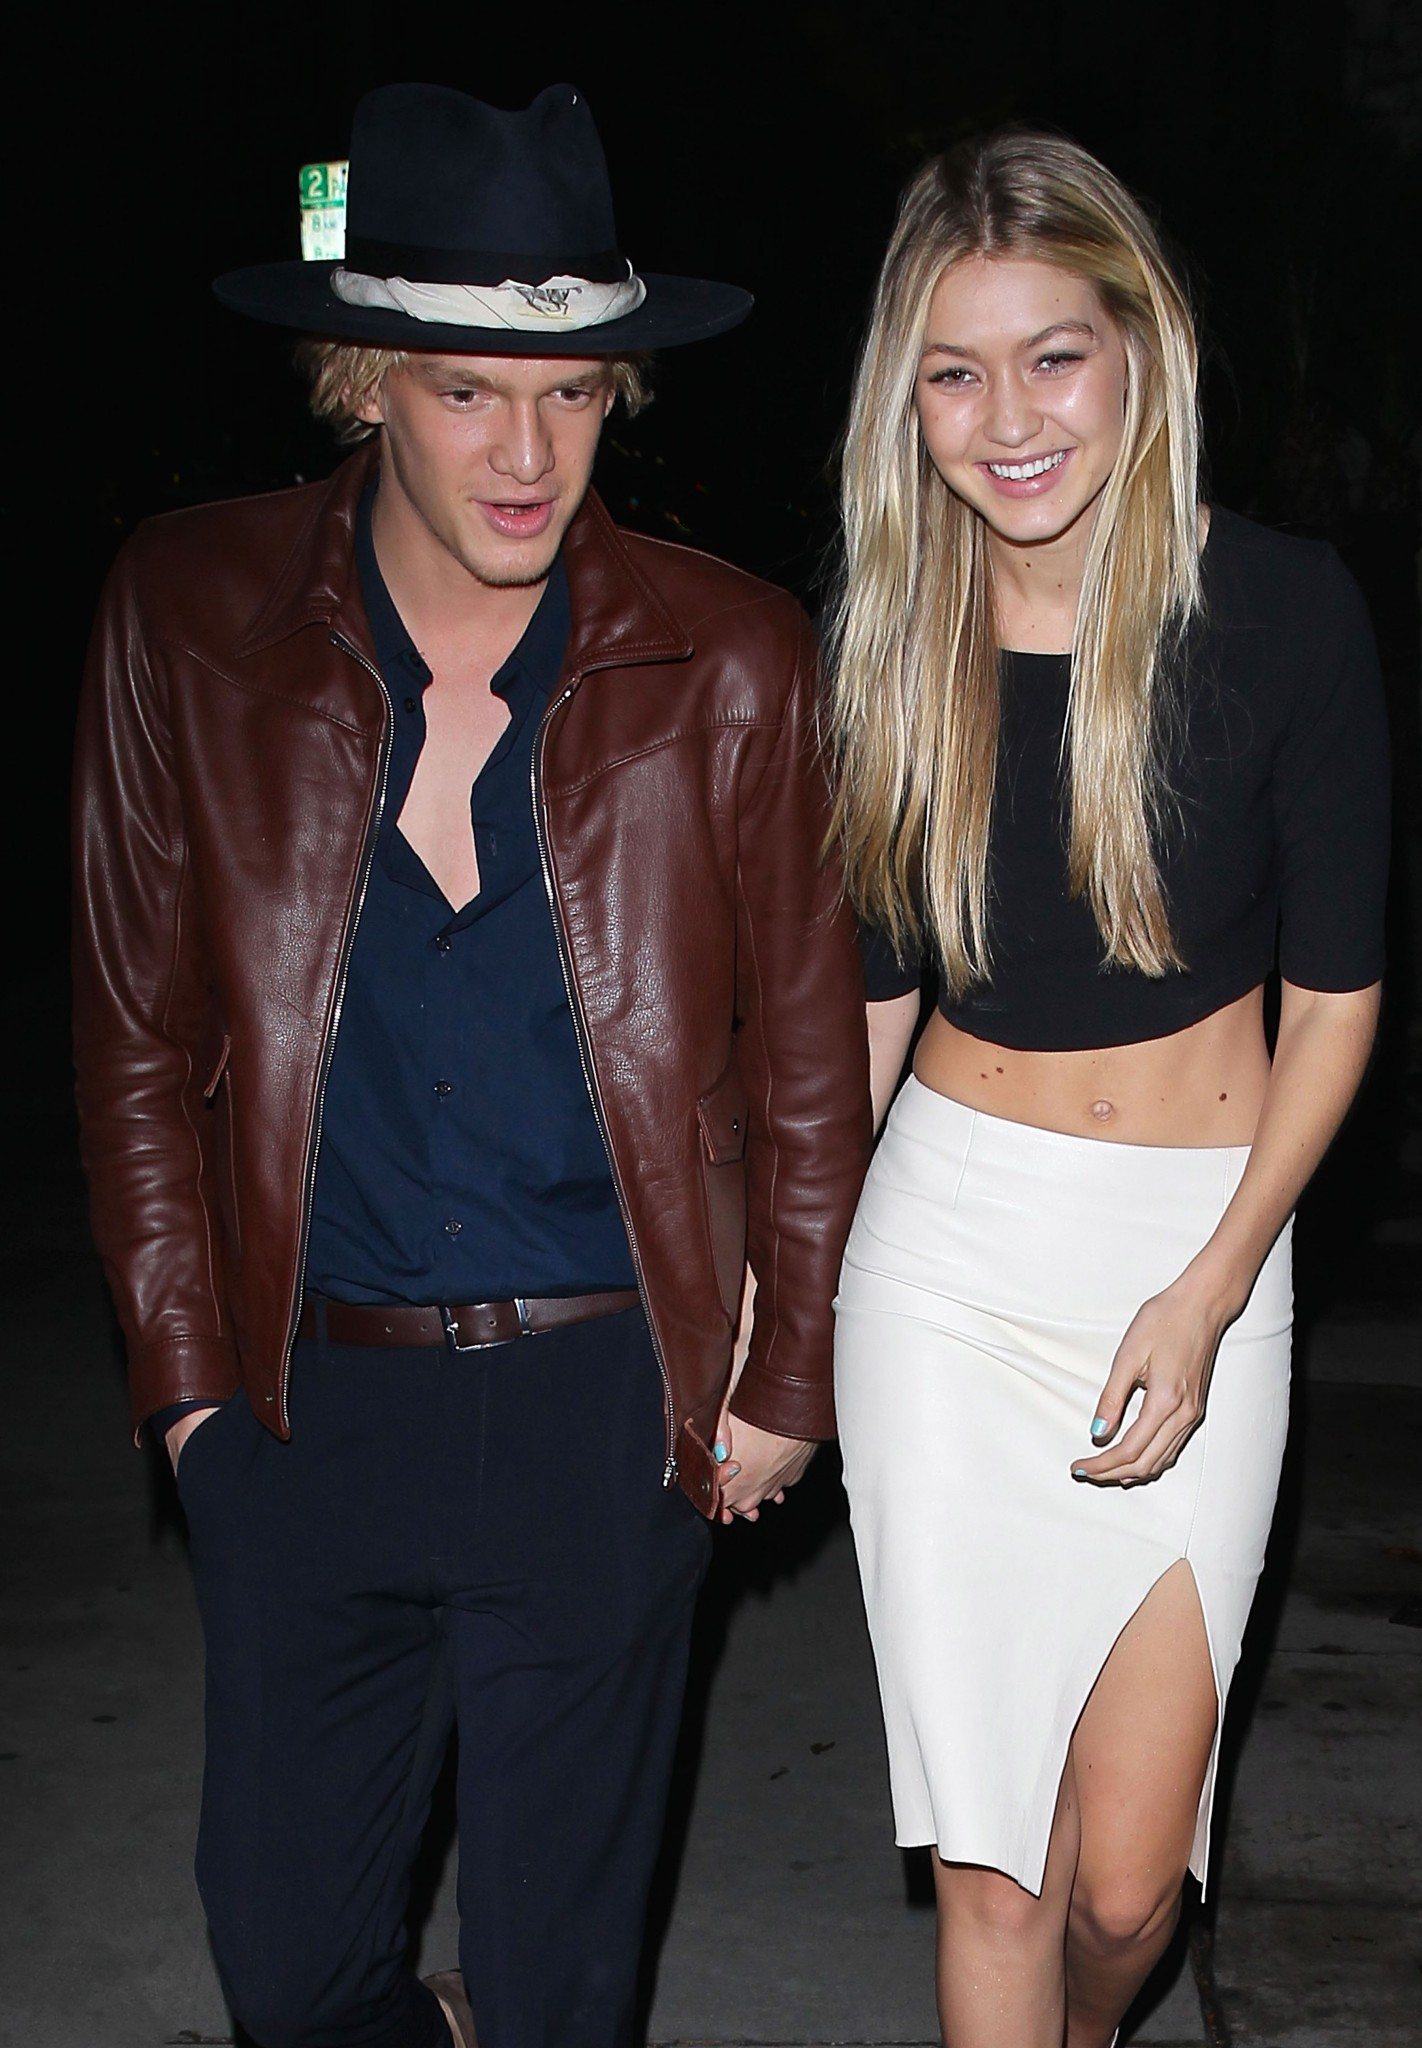 *EXCLUSIVE* Cody Simpson and Gigi Hadid reunited at The Nice Guy!